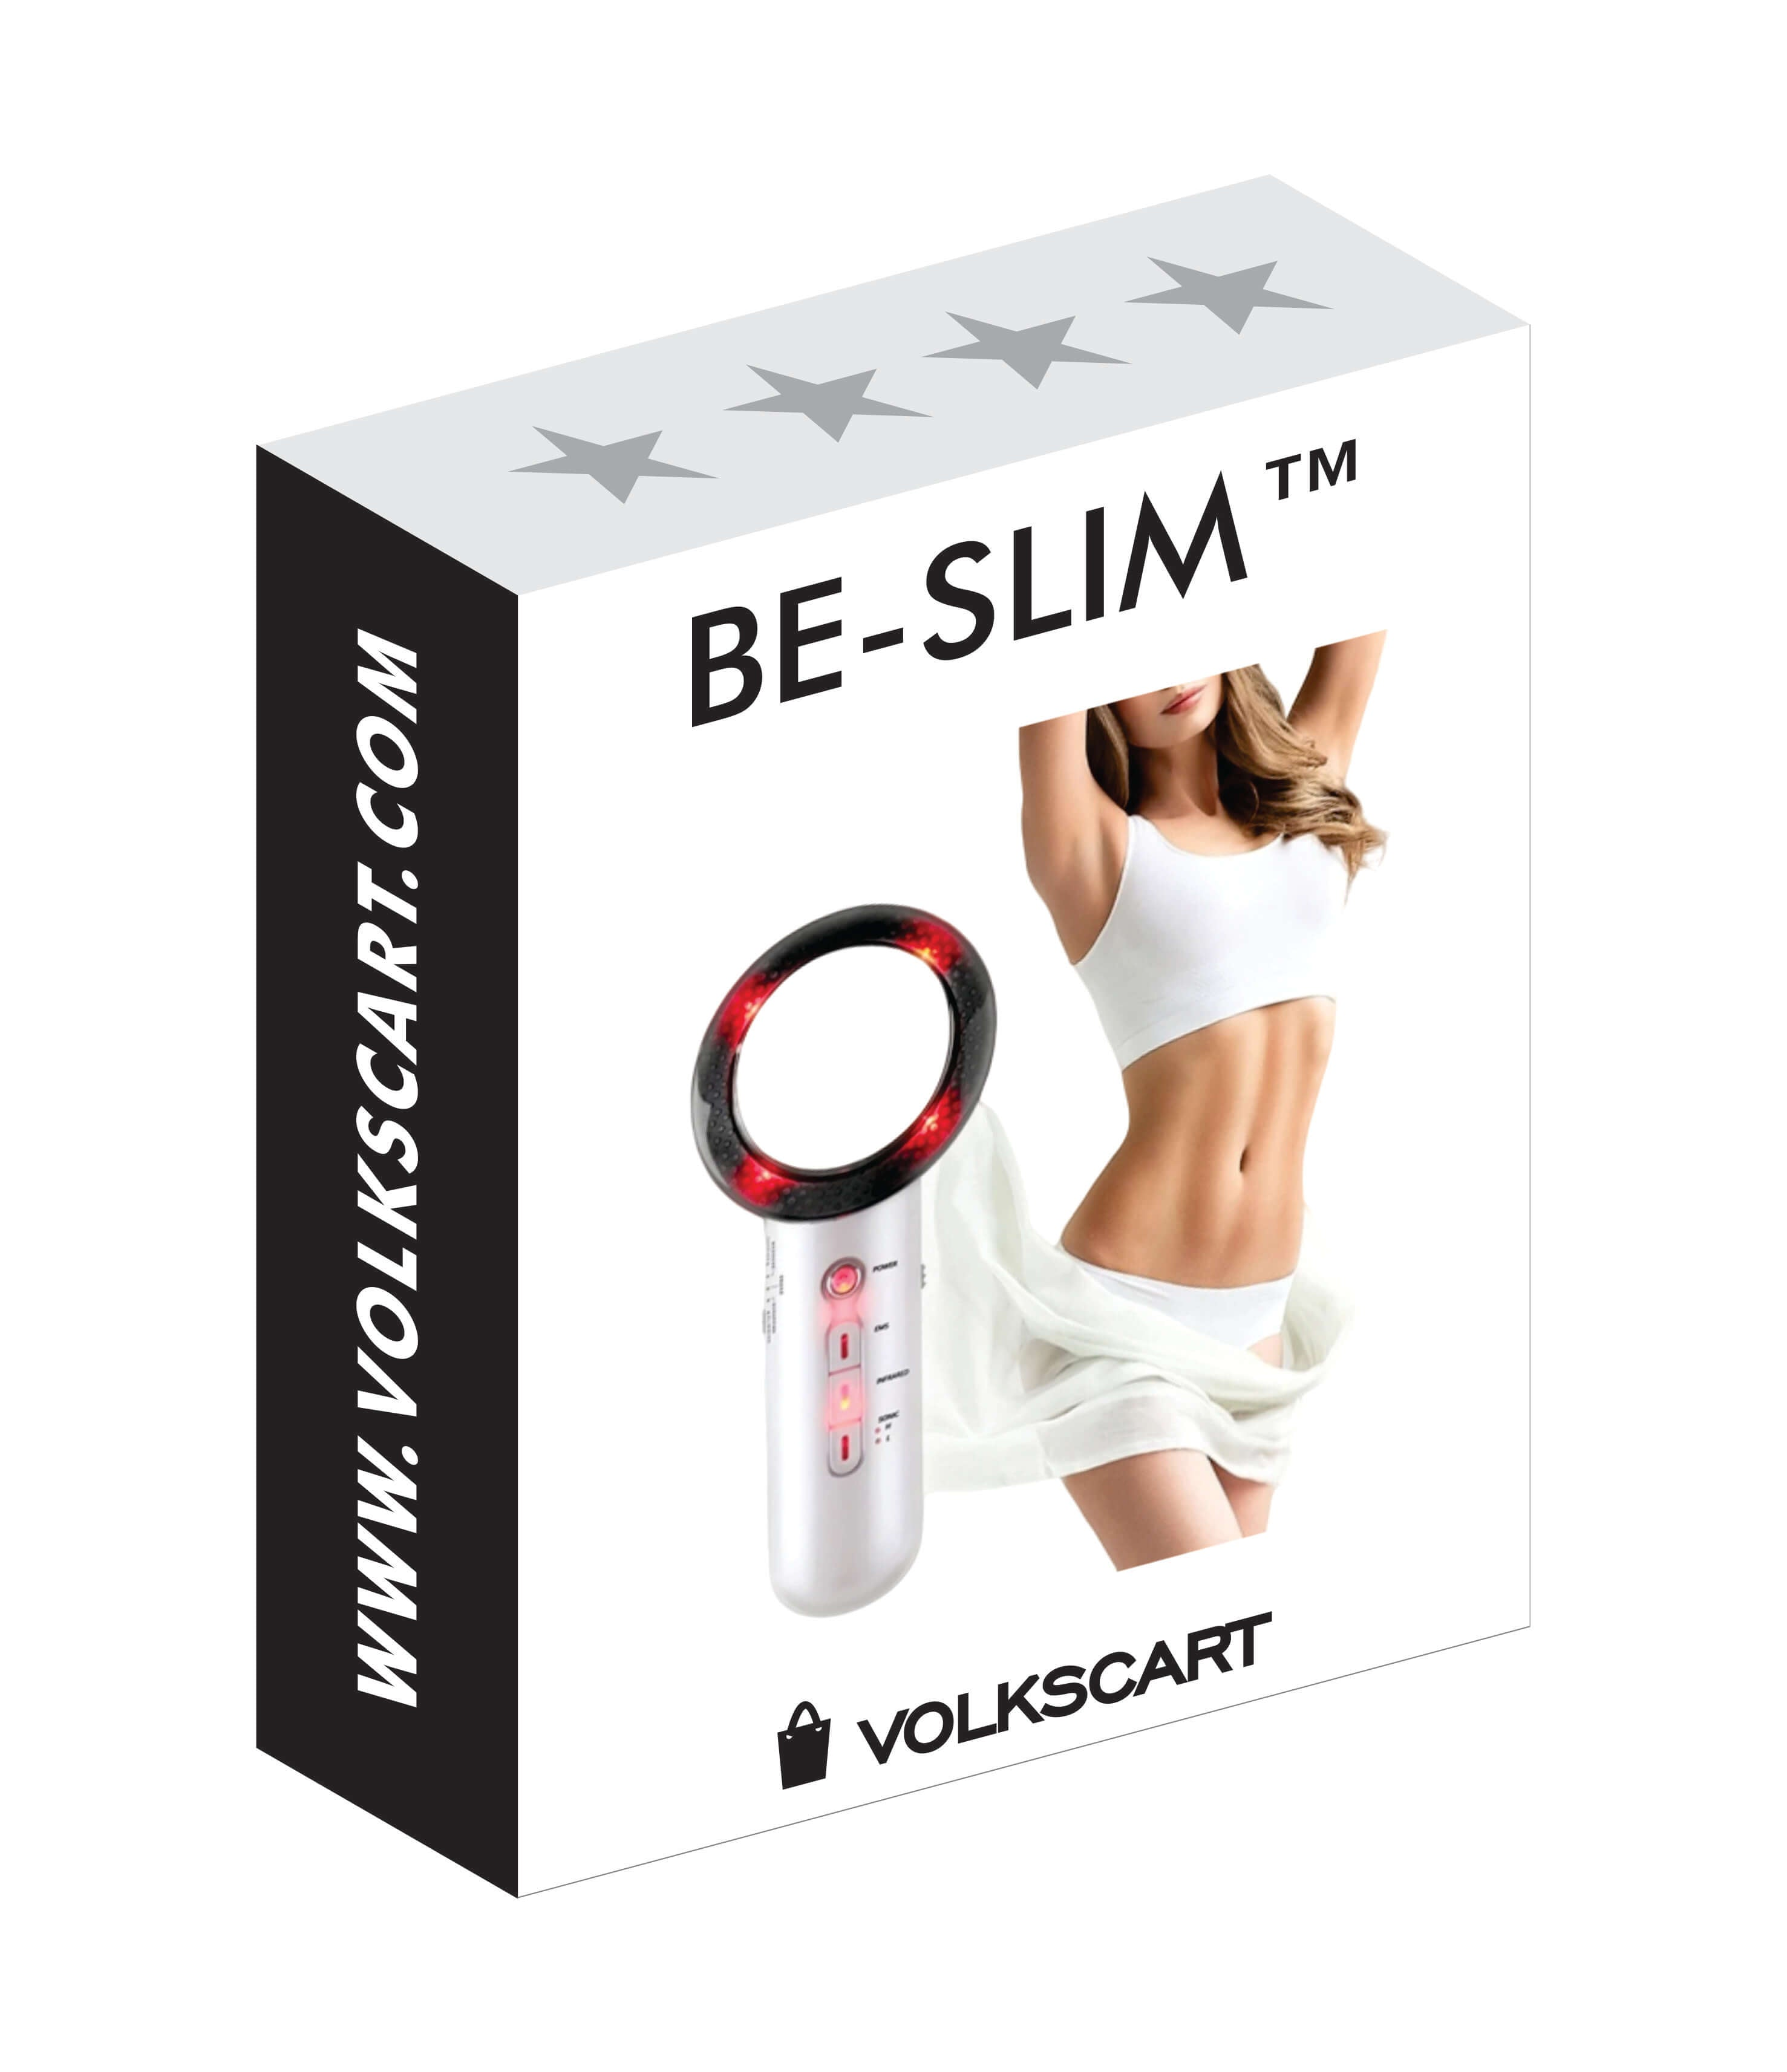 Be-Slim™ Ultrasonic Cavitation Fat and Cellulite Remover